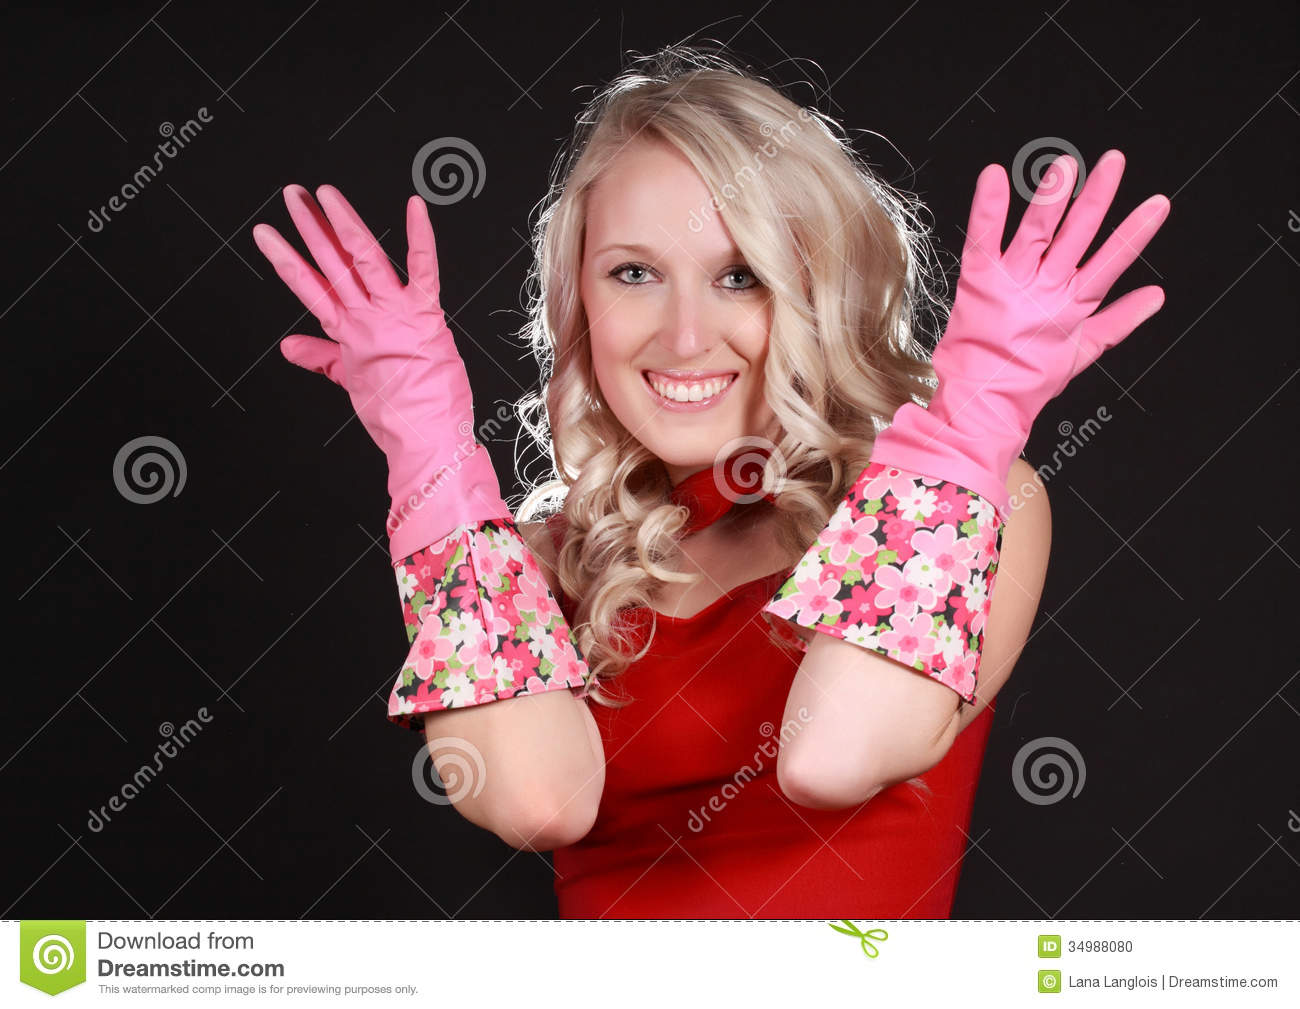 Properties Girls wearing latex gloves